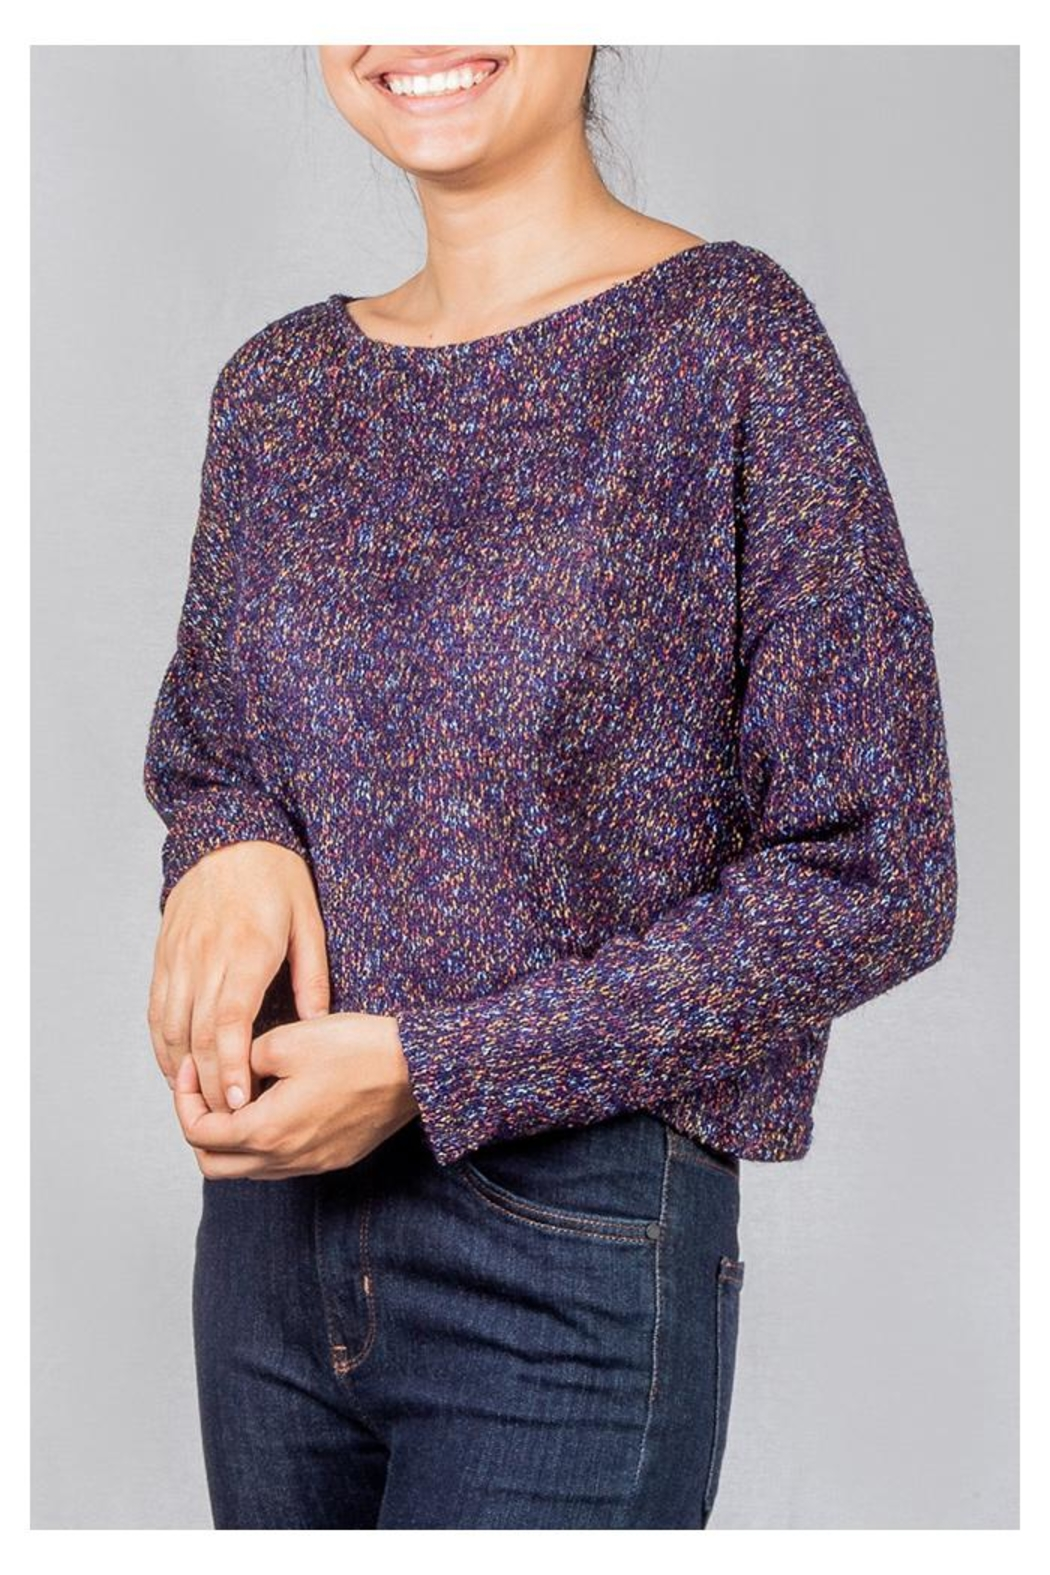 Lumiere Coloful Knit Sweater - Front Full Image